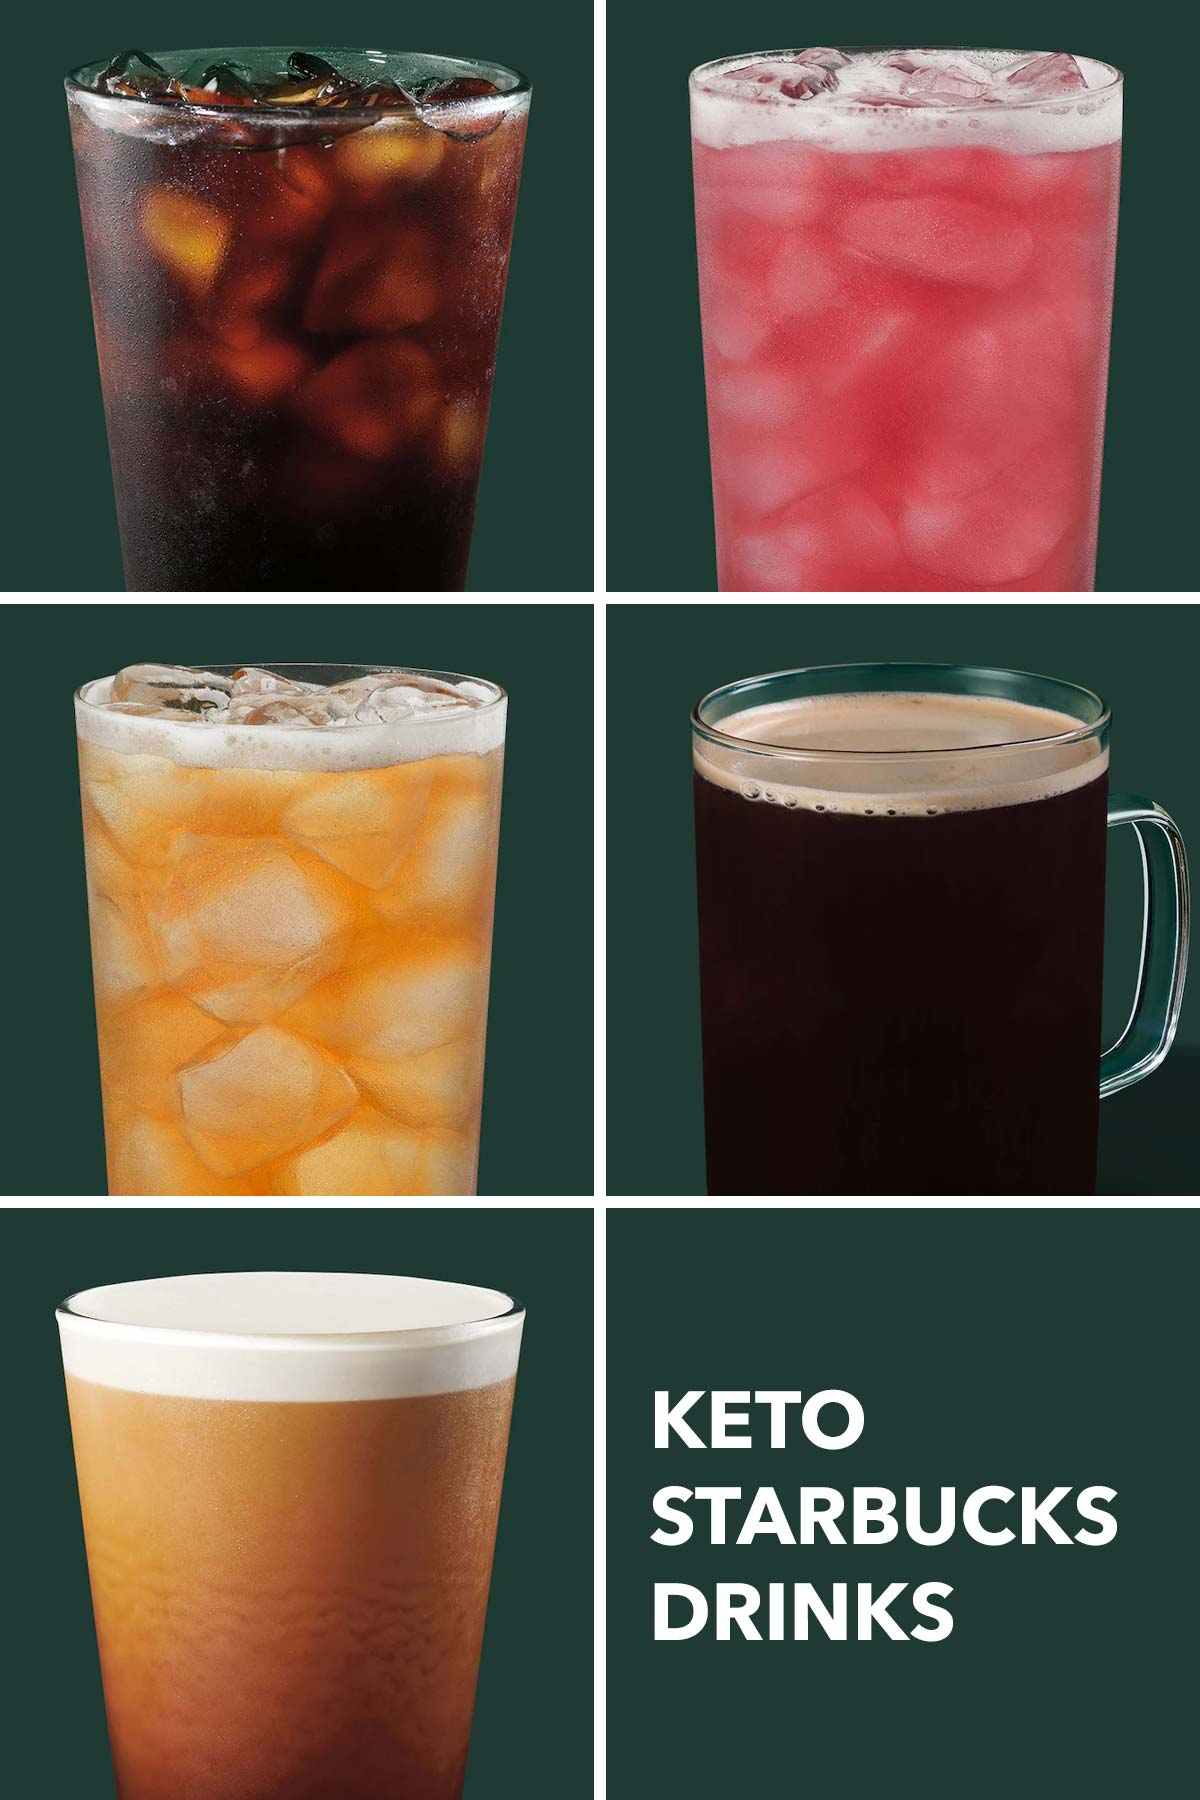 Six photo grid showing five Keto drinks to get at Starbucks.